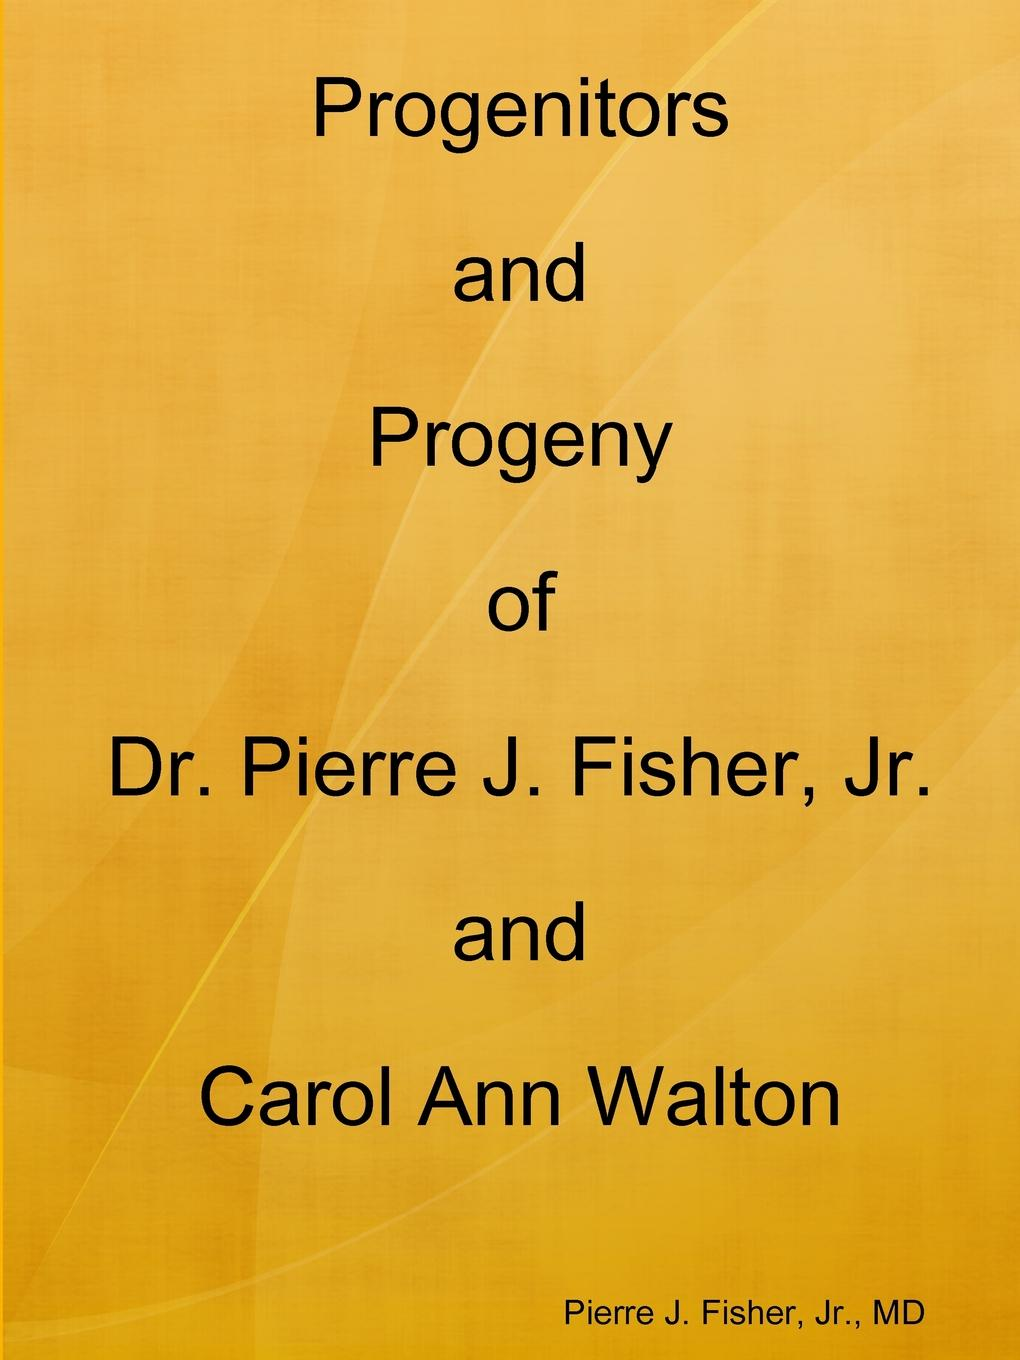 MD Pierre J. Fisher Progenitors and Progeny of Dr. Pierre J. Fisher, Jr. and Carol Ann Walton dr j sparrow driver